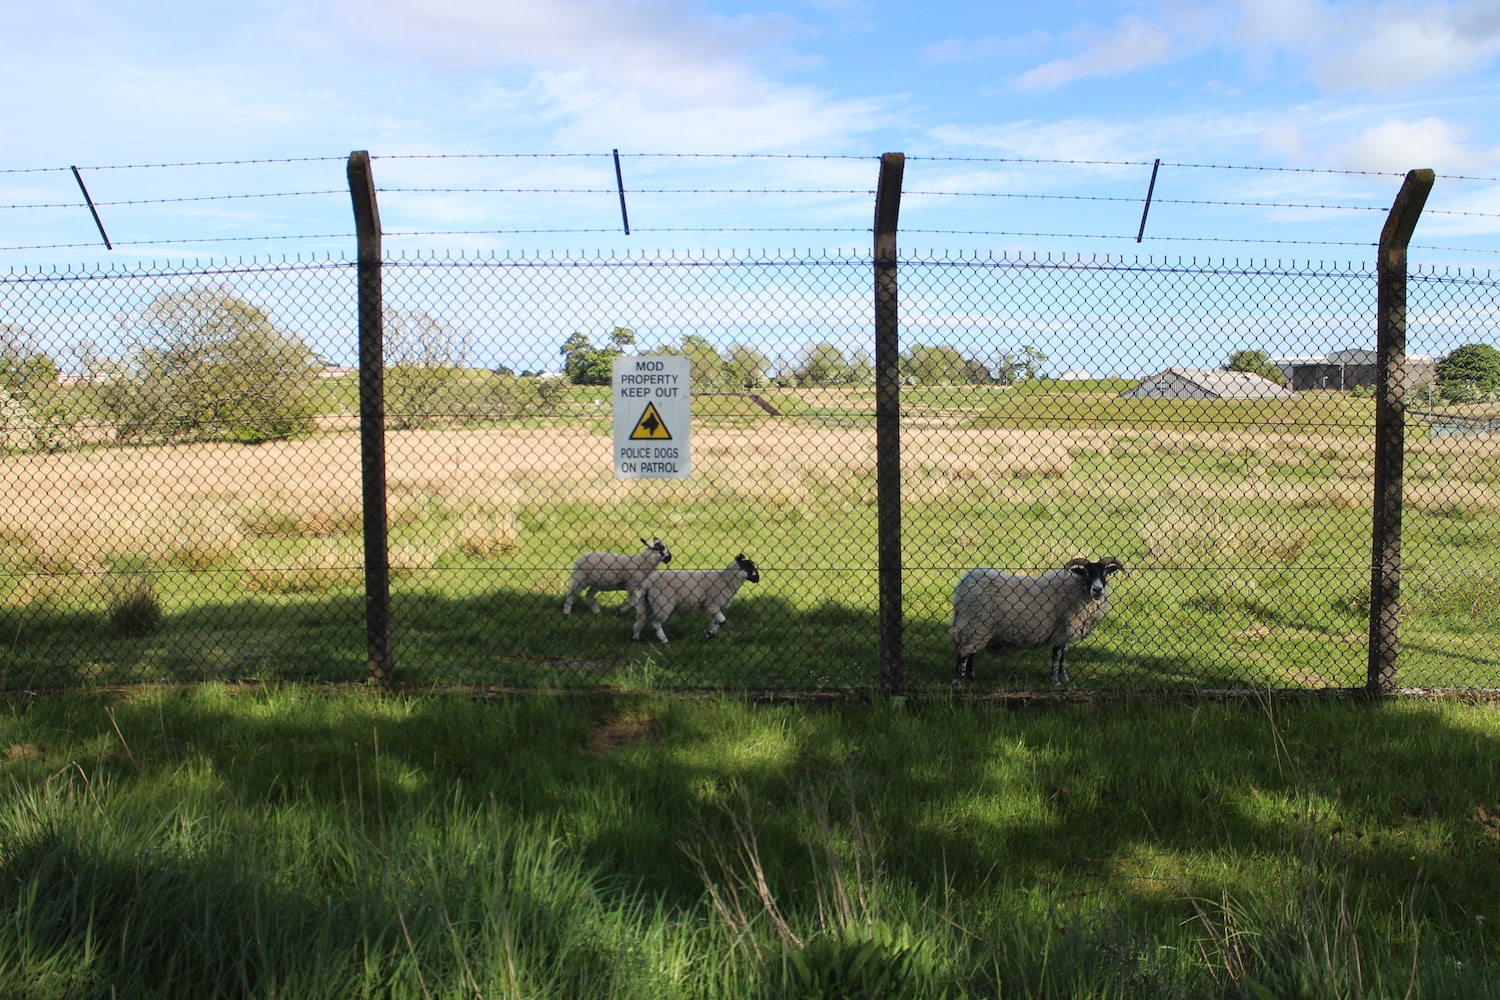 The boundary fence of the defence munitions stores on the edge of Barrmill village.